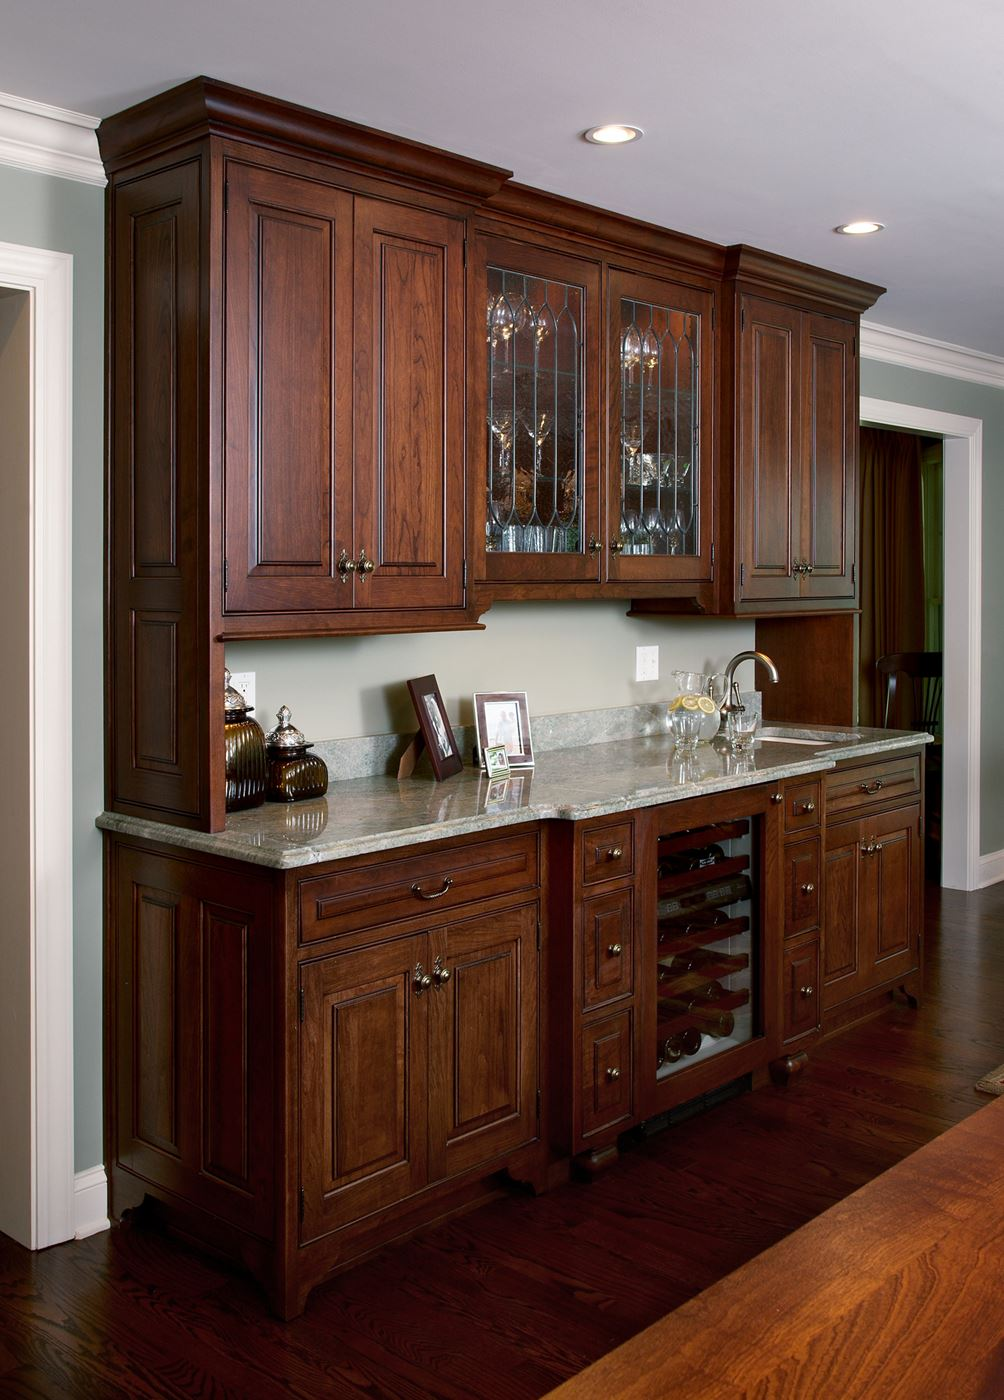 How To Change Kitchen Cabinet Color Wet Bar | Gallery | Custom Wood Products - Handcrafted